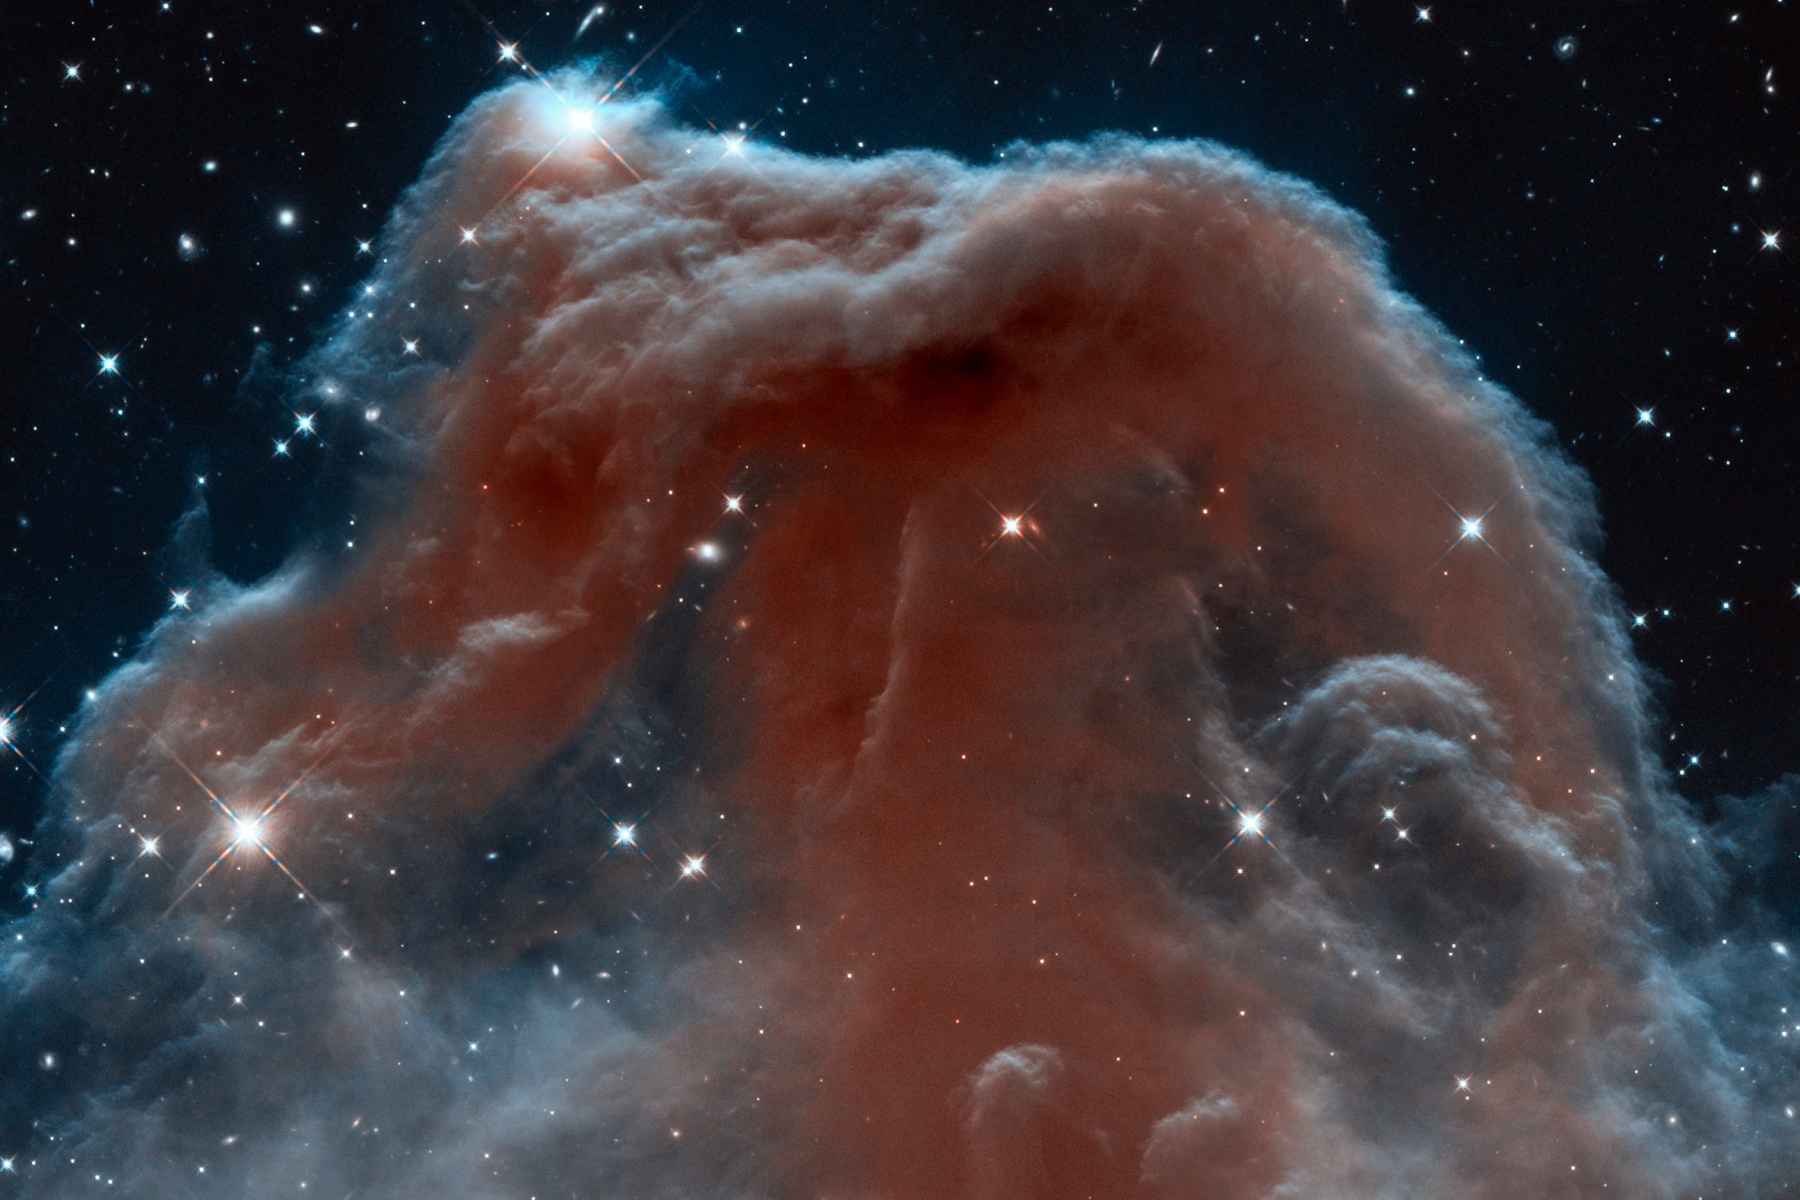 Image Credit: NASA/ESA/Hubble Heritage Team